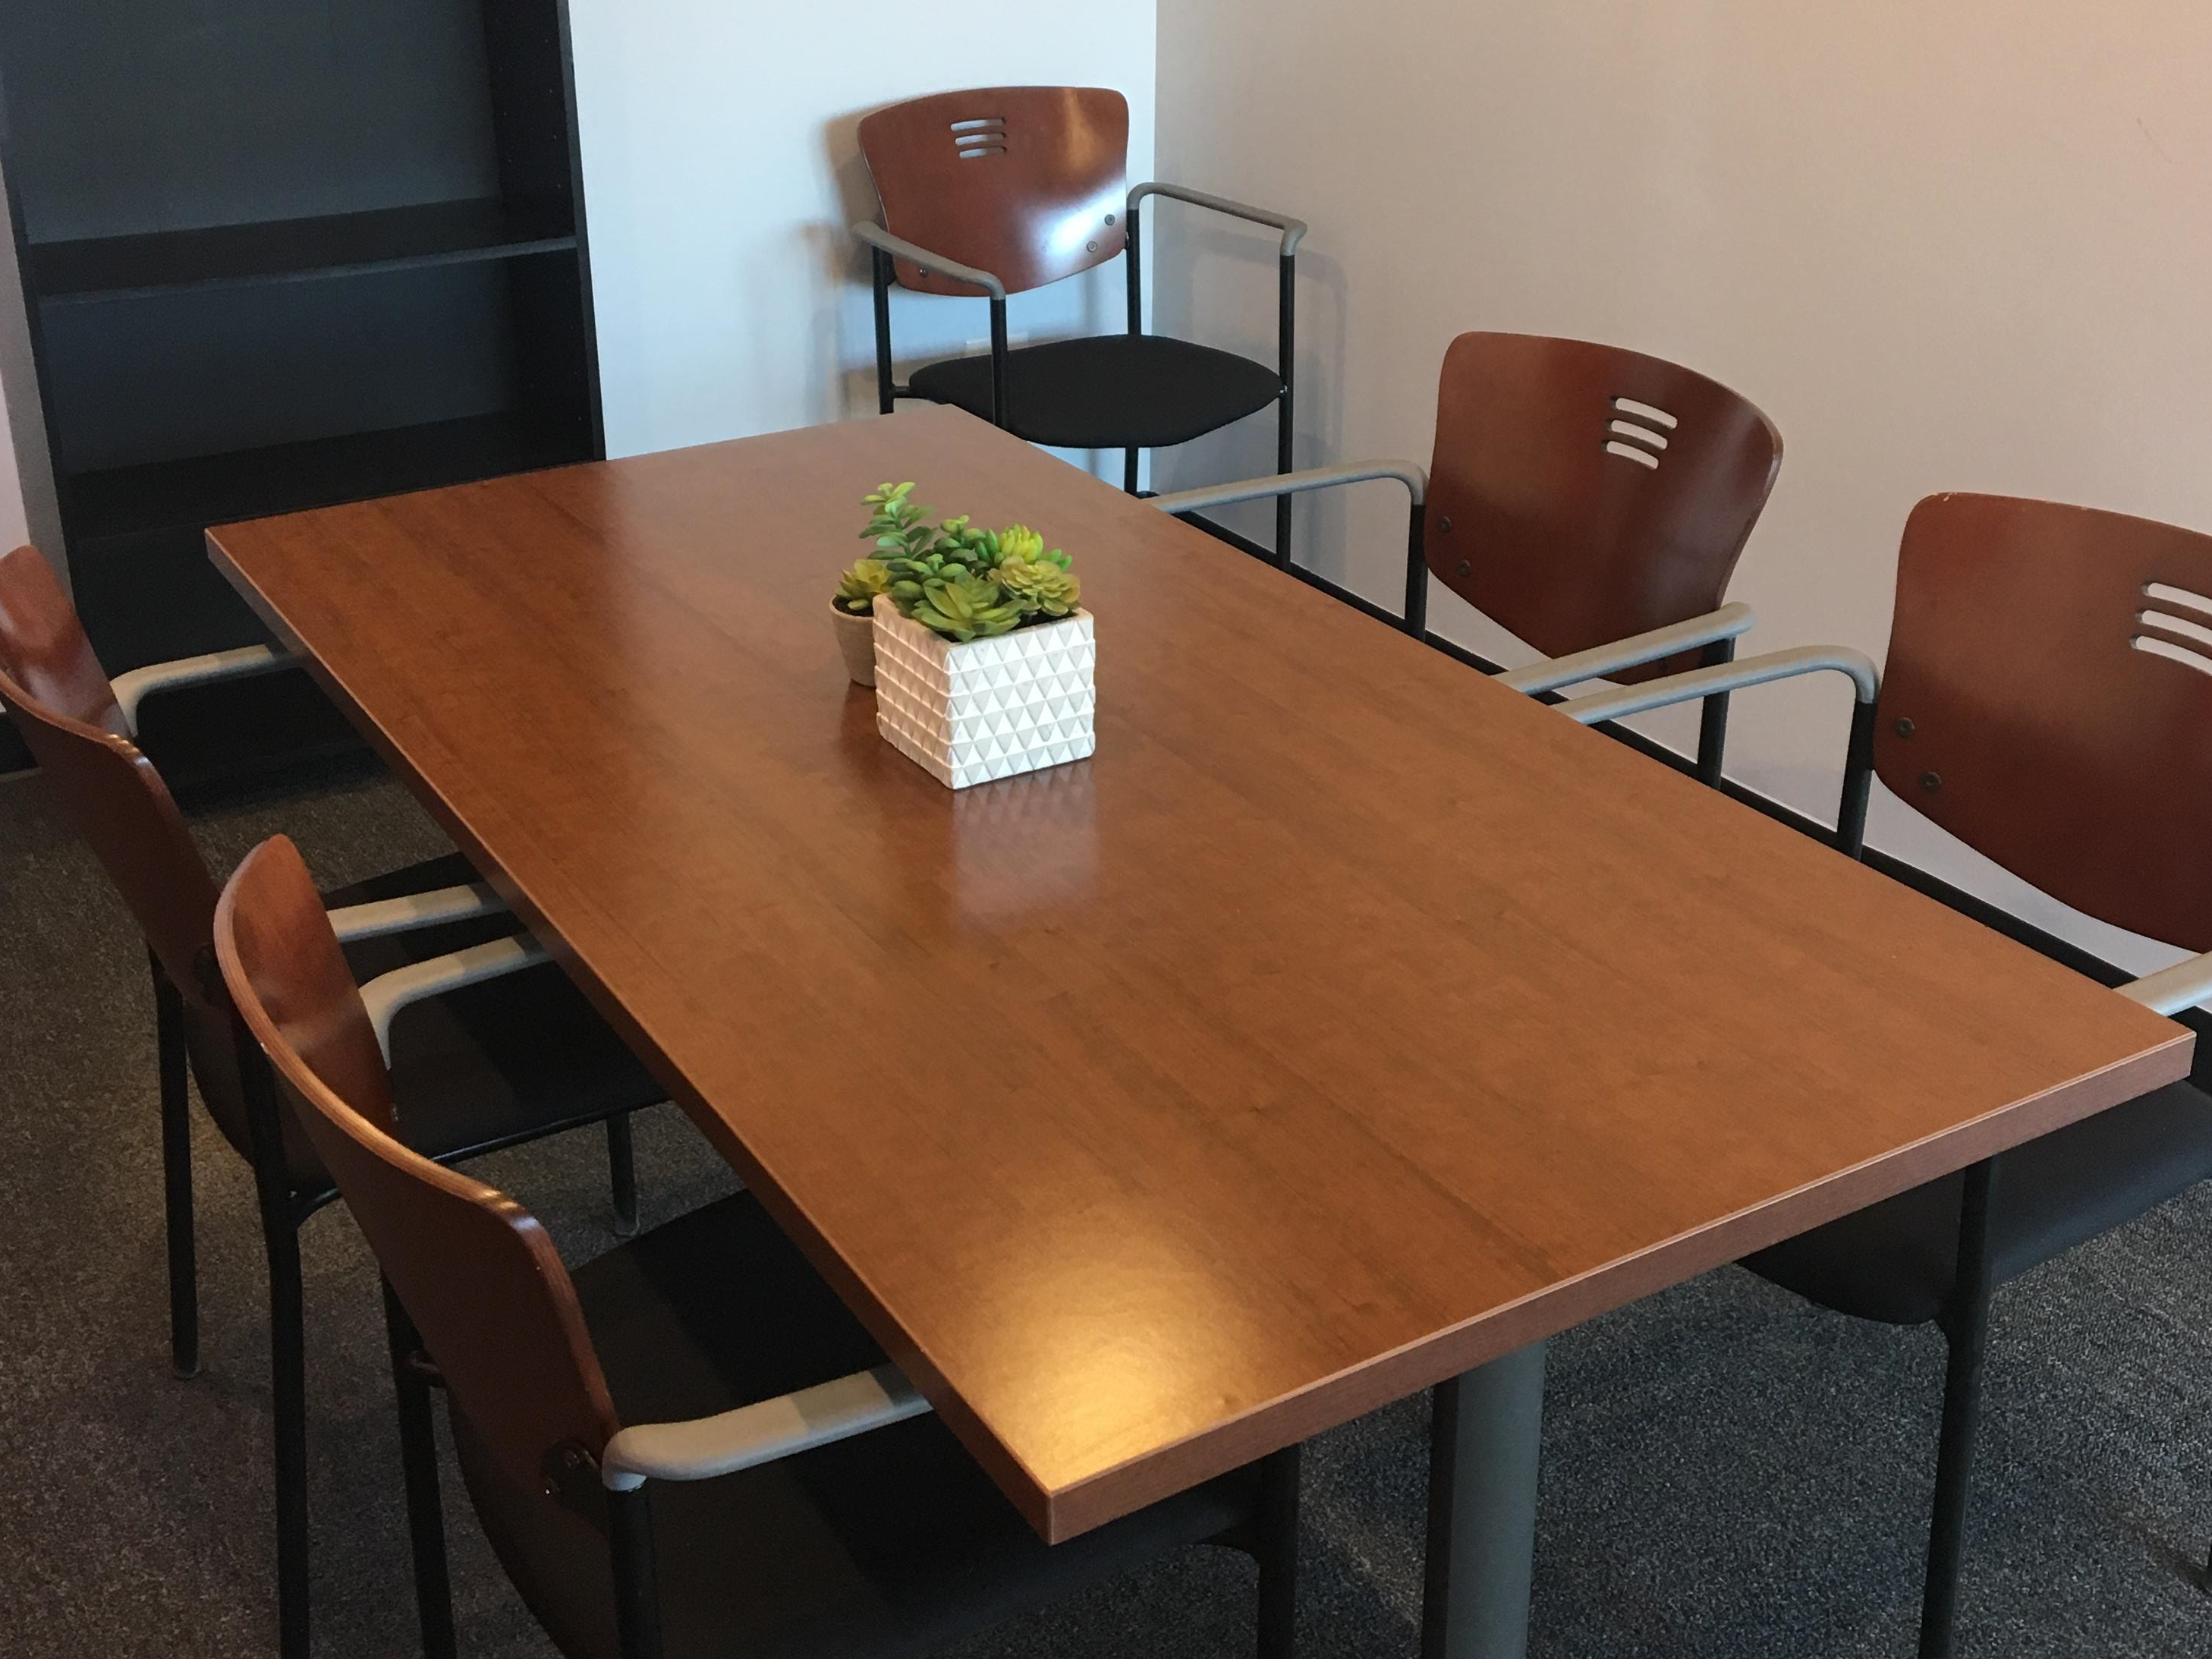 US itek, Inc. - Space to Rent - Small meeting room up to 6